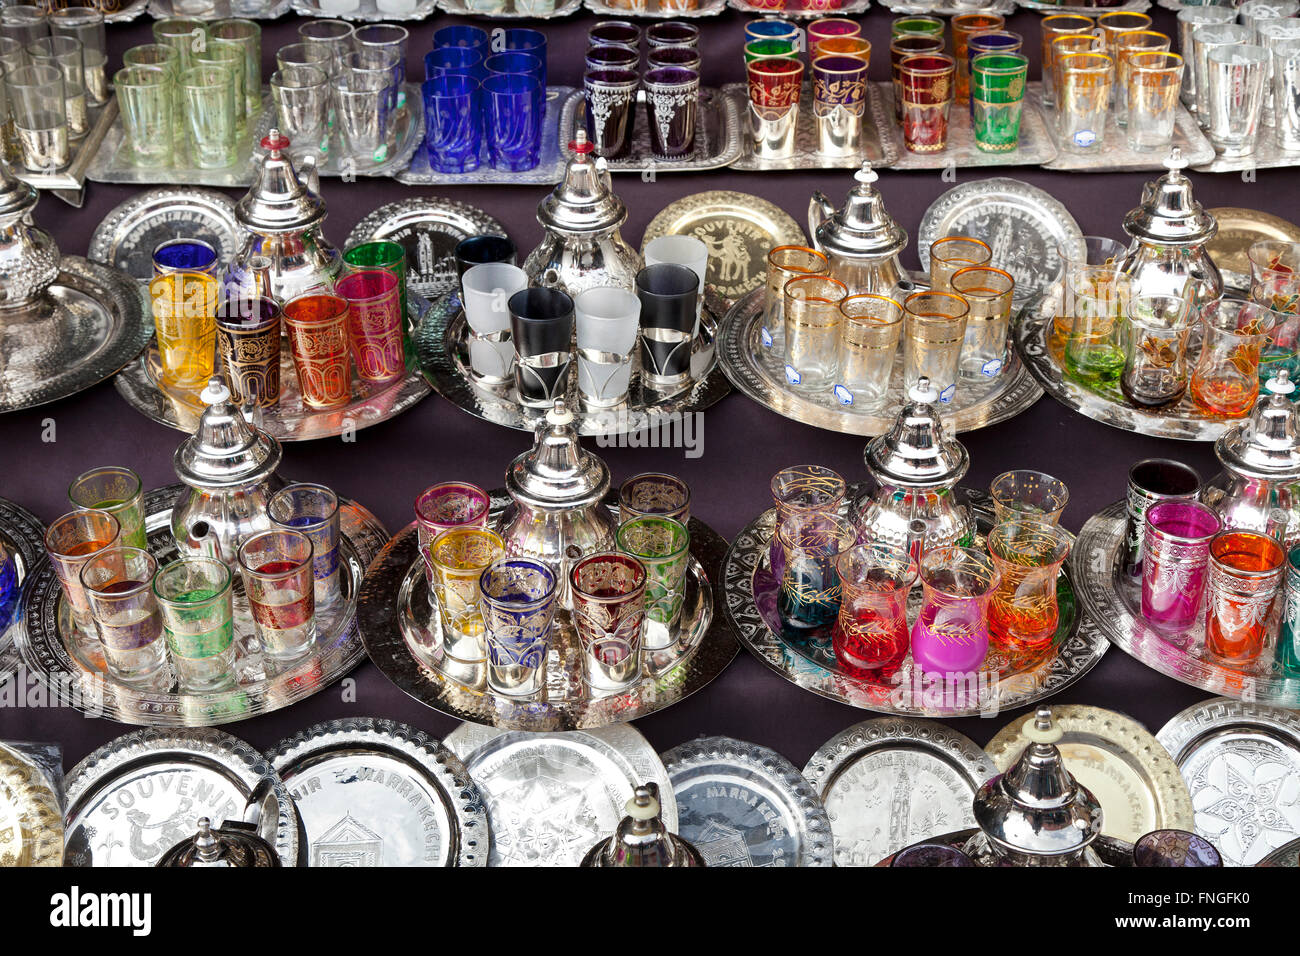 Moroccan glassware and teapots  for sale in the souk of Marrakesh, Morocco - Stock Image